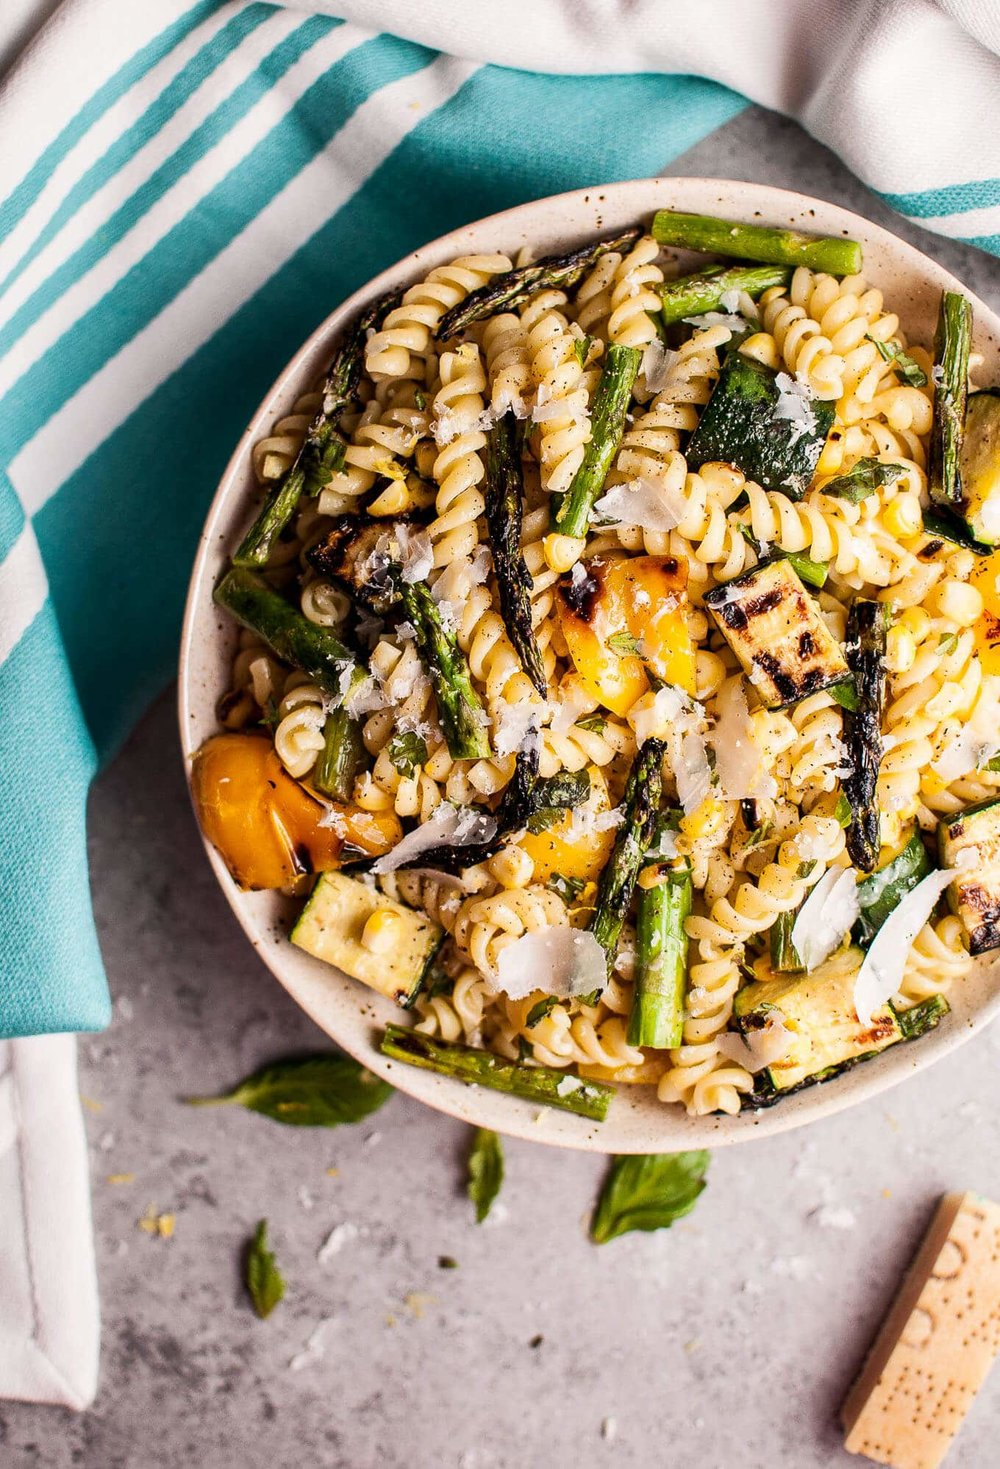 http://www.saltandlavender.com/grilled-summer-vegetable-pasta-salad/